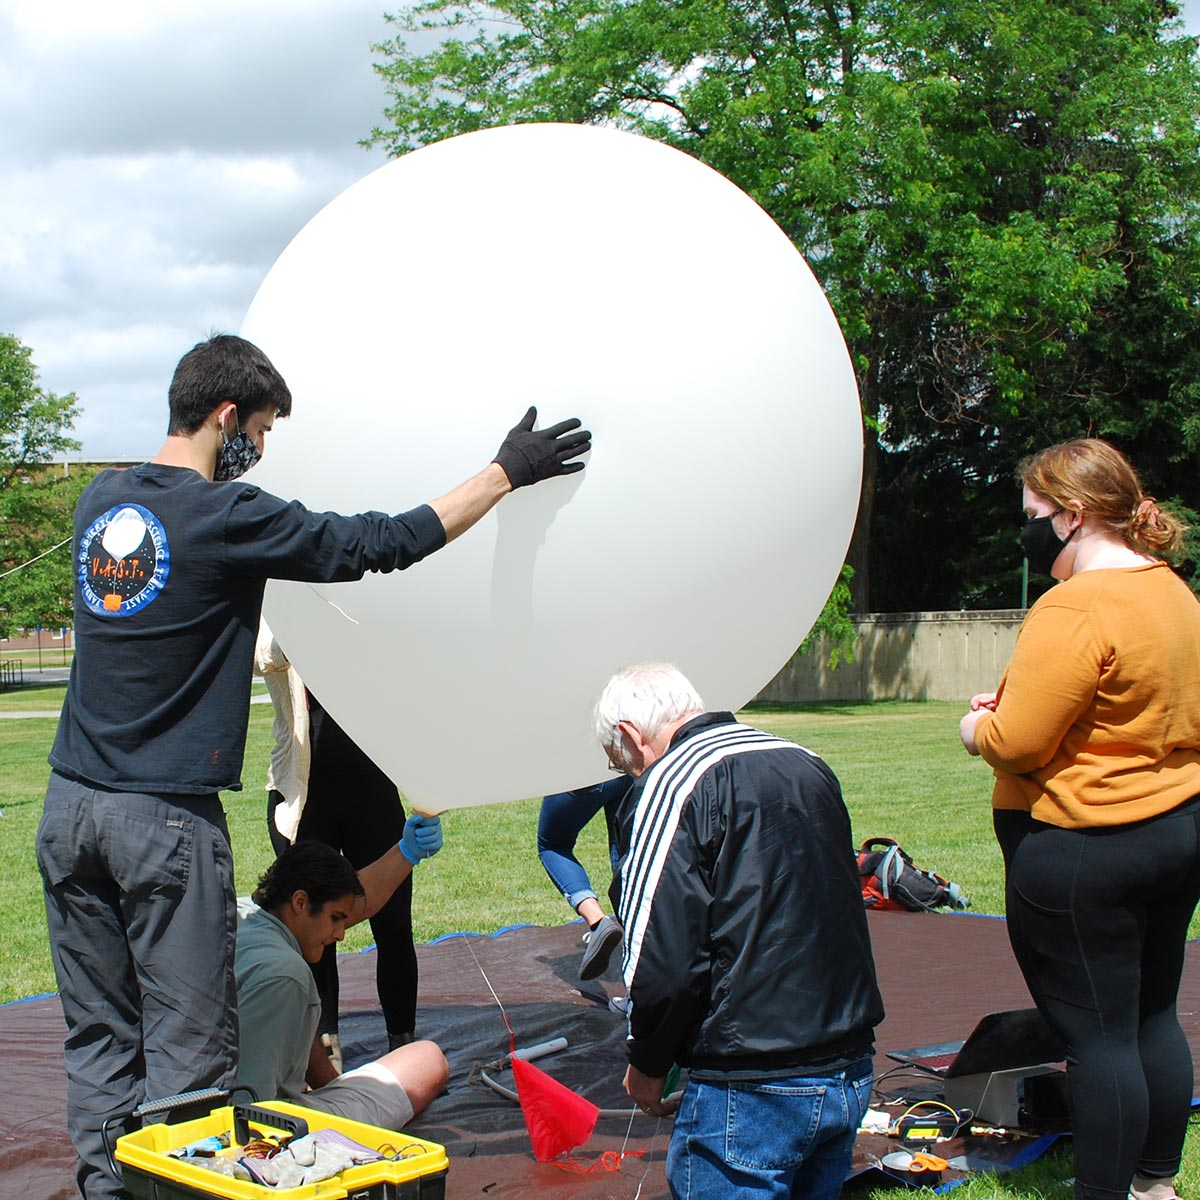 U of I engineering students are using high-altitude balloons